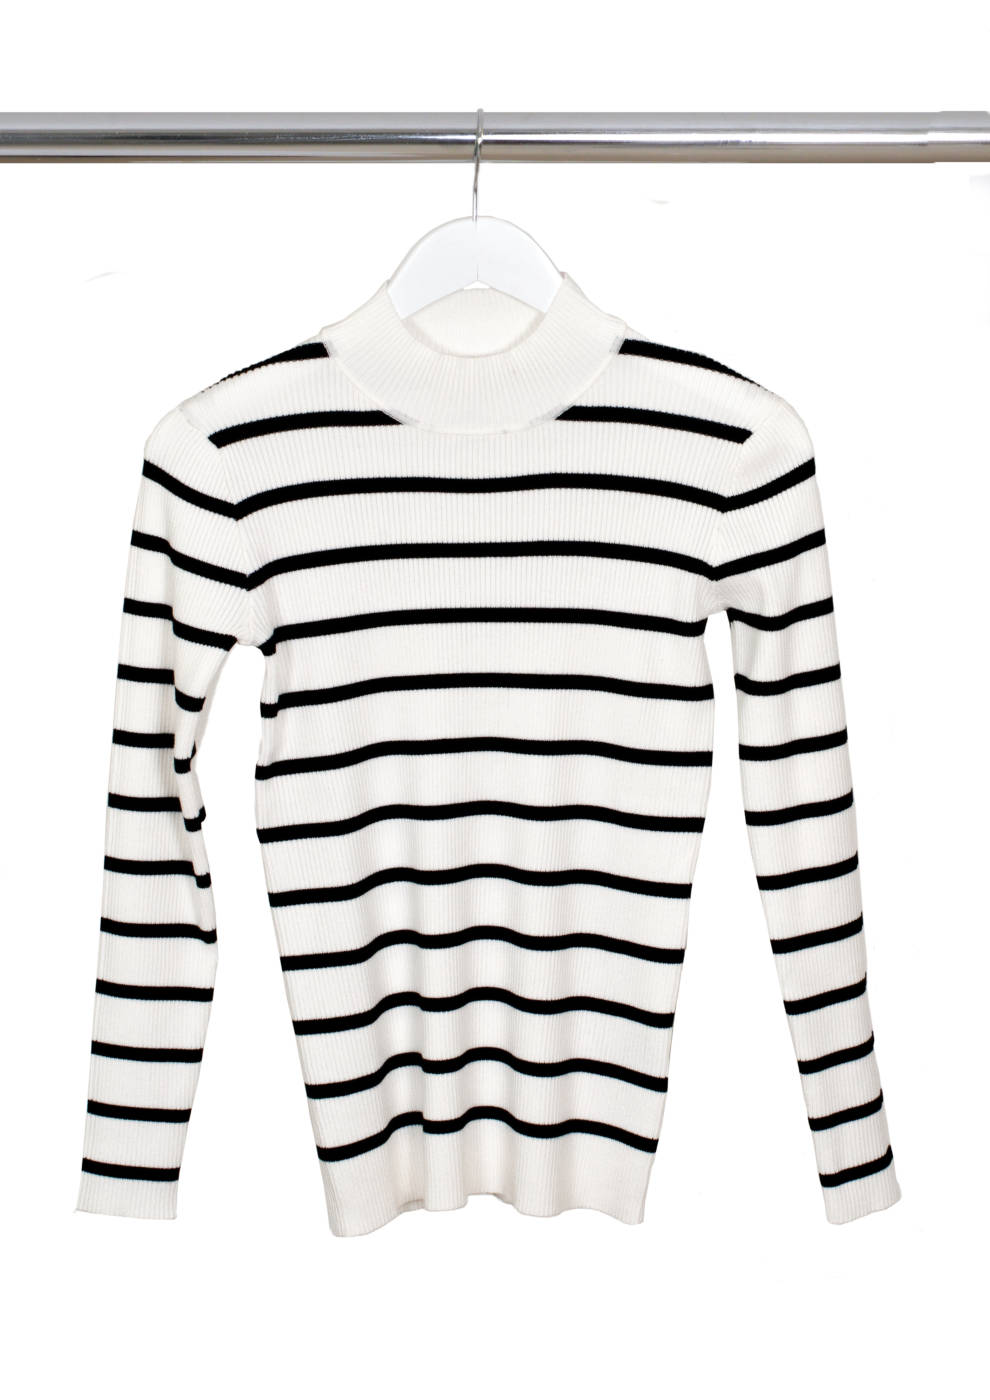 12.BlackCreamStripes